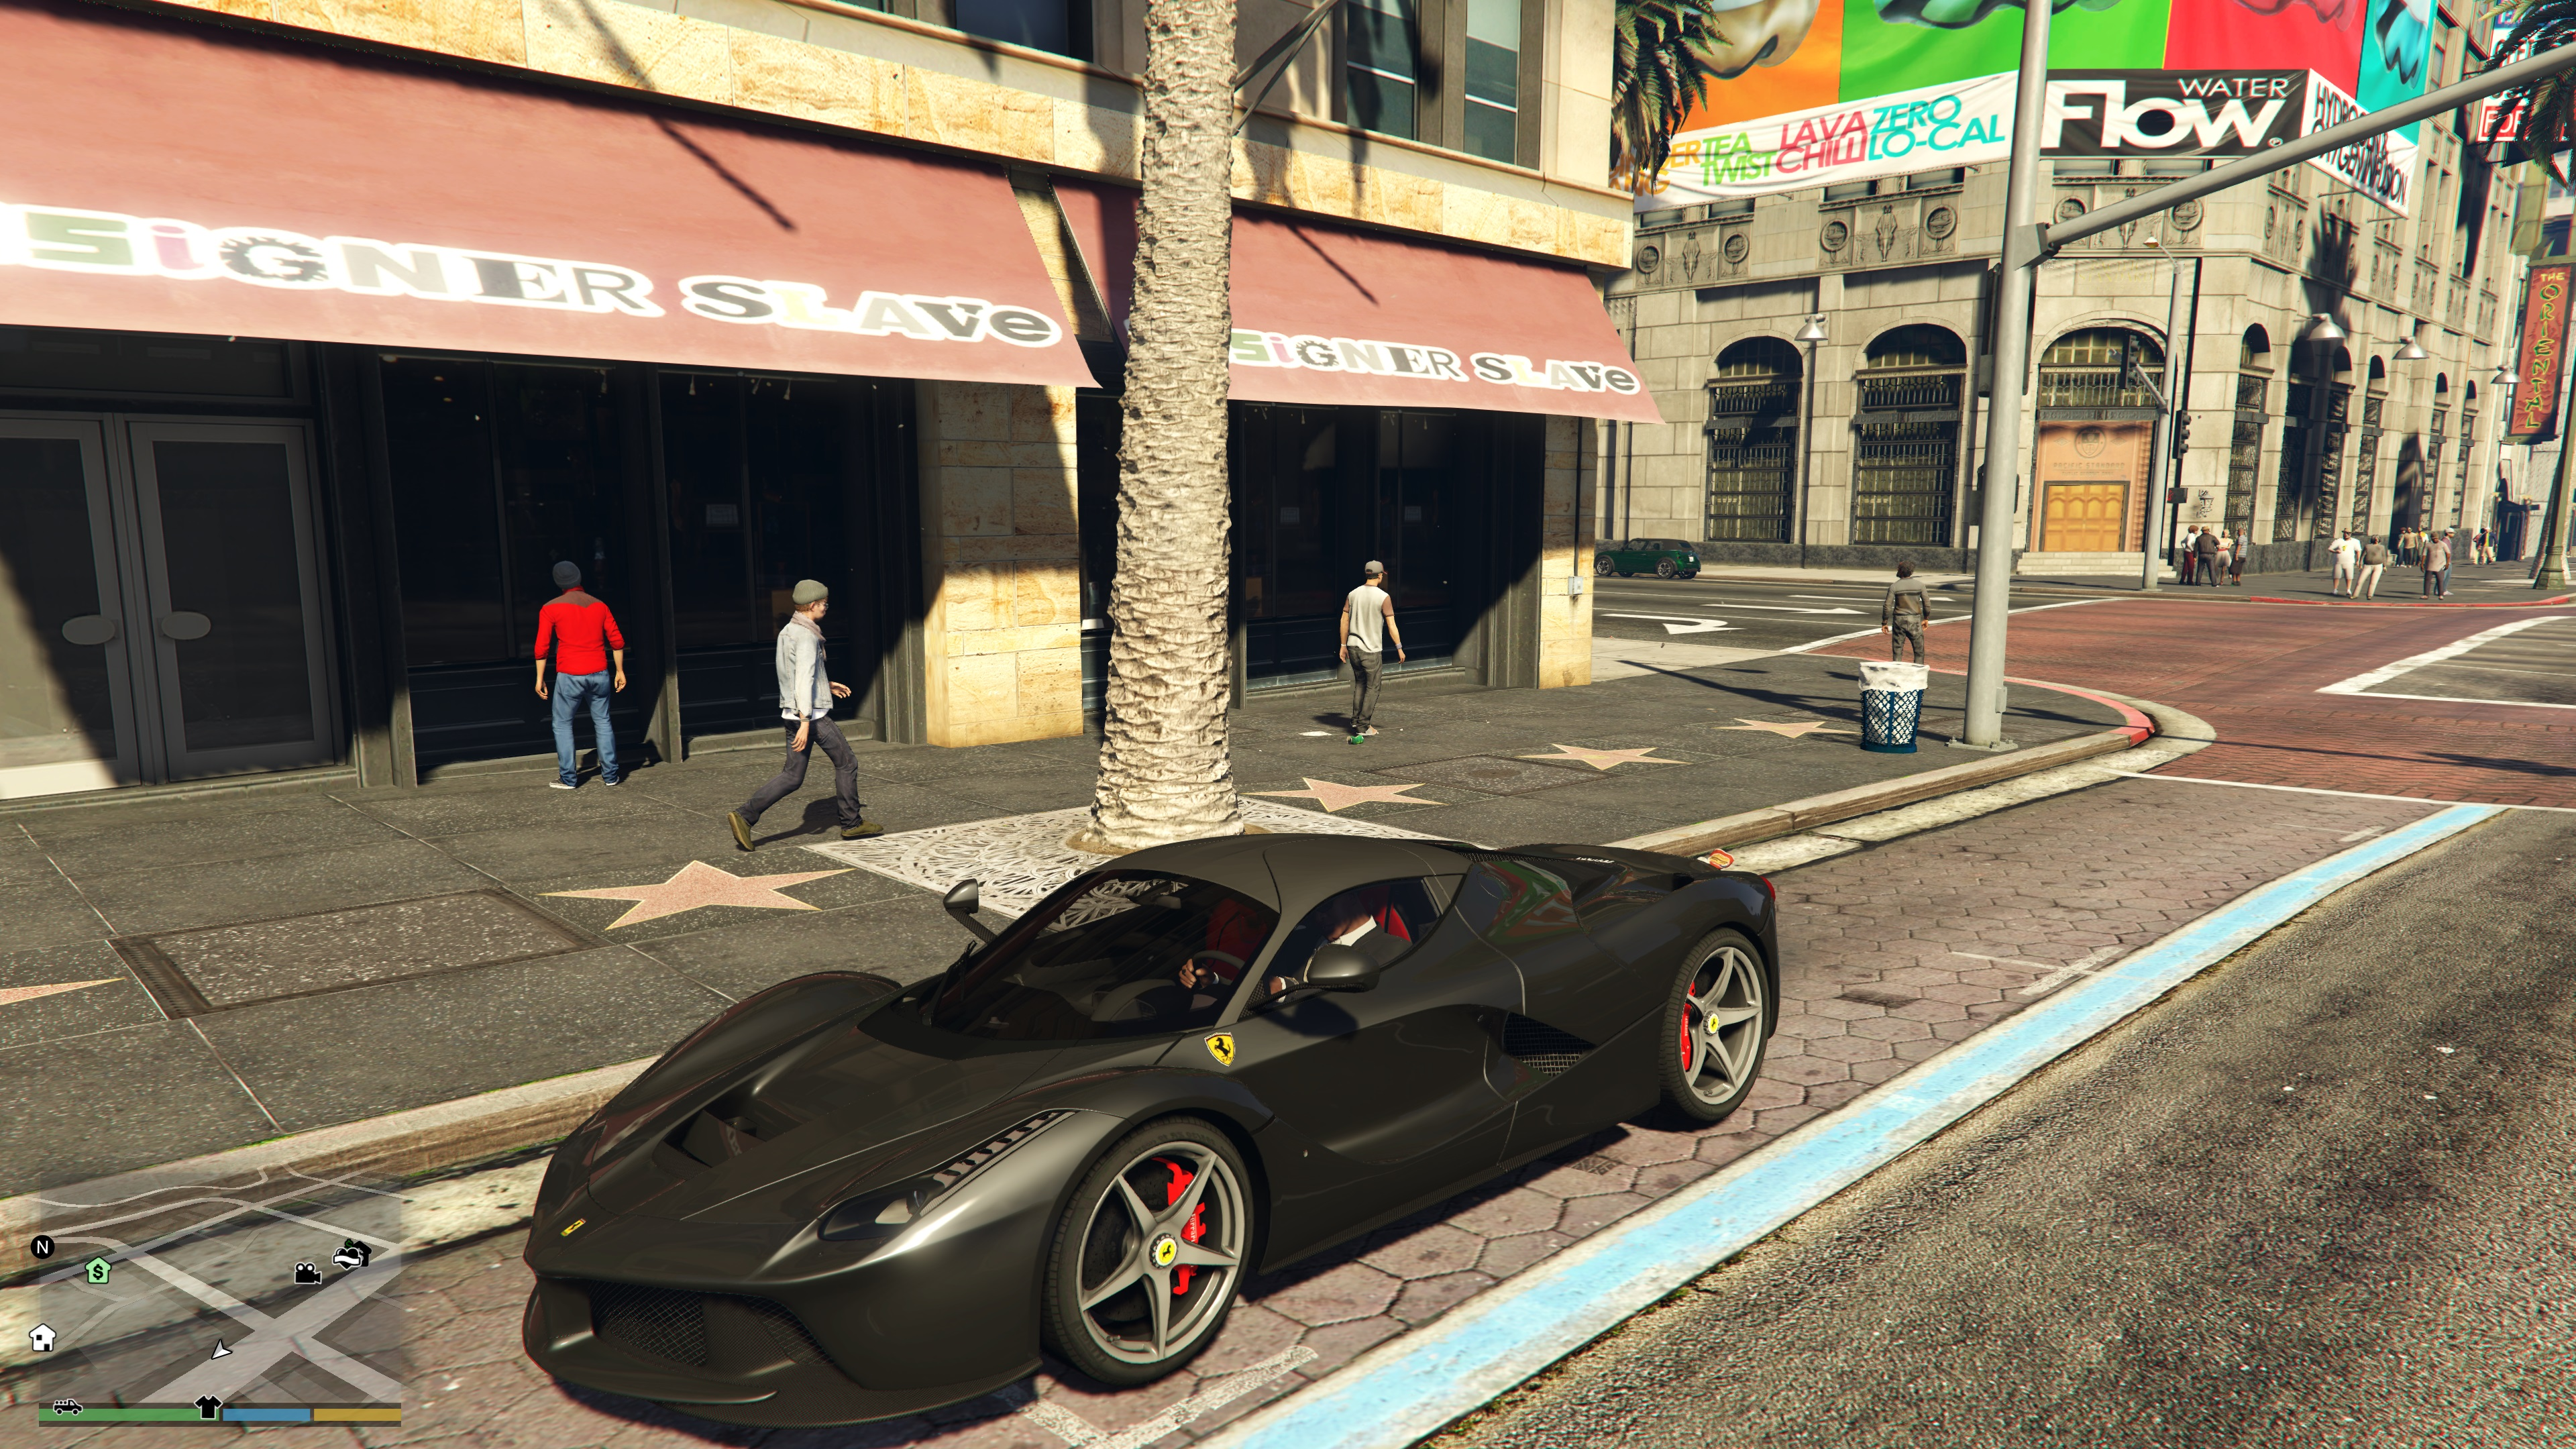 gta 5 mods voitures sur le forum grand theft auto v 24 08 2015 17 21 26. Black Bedroom Furniture Sets. Home Design Ideas